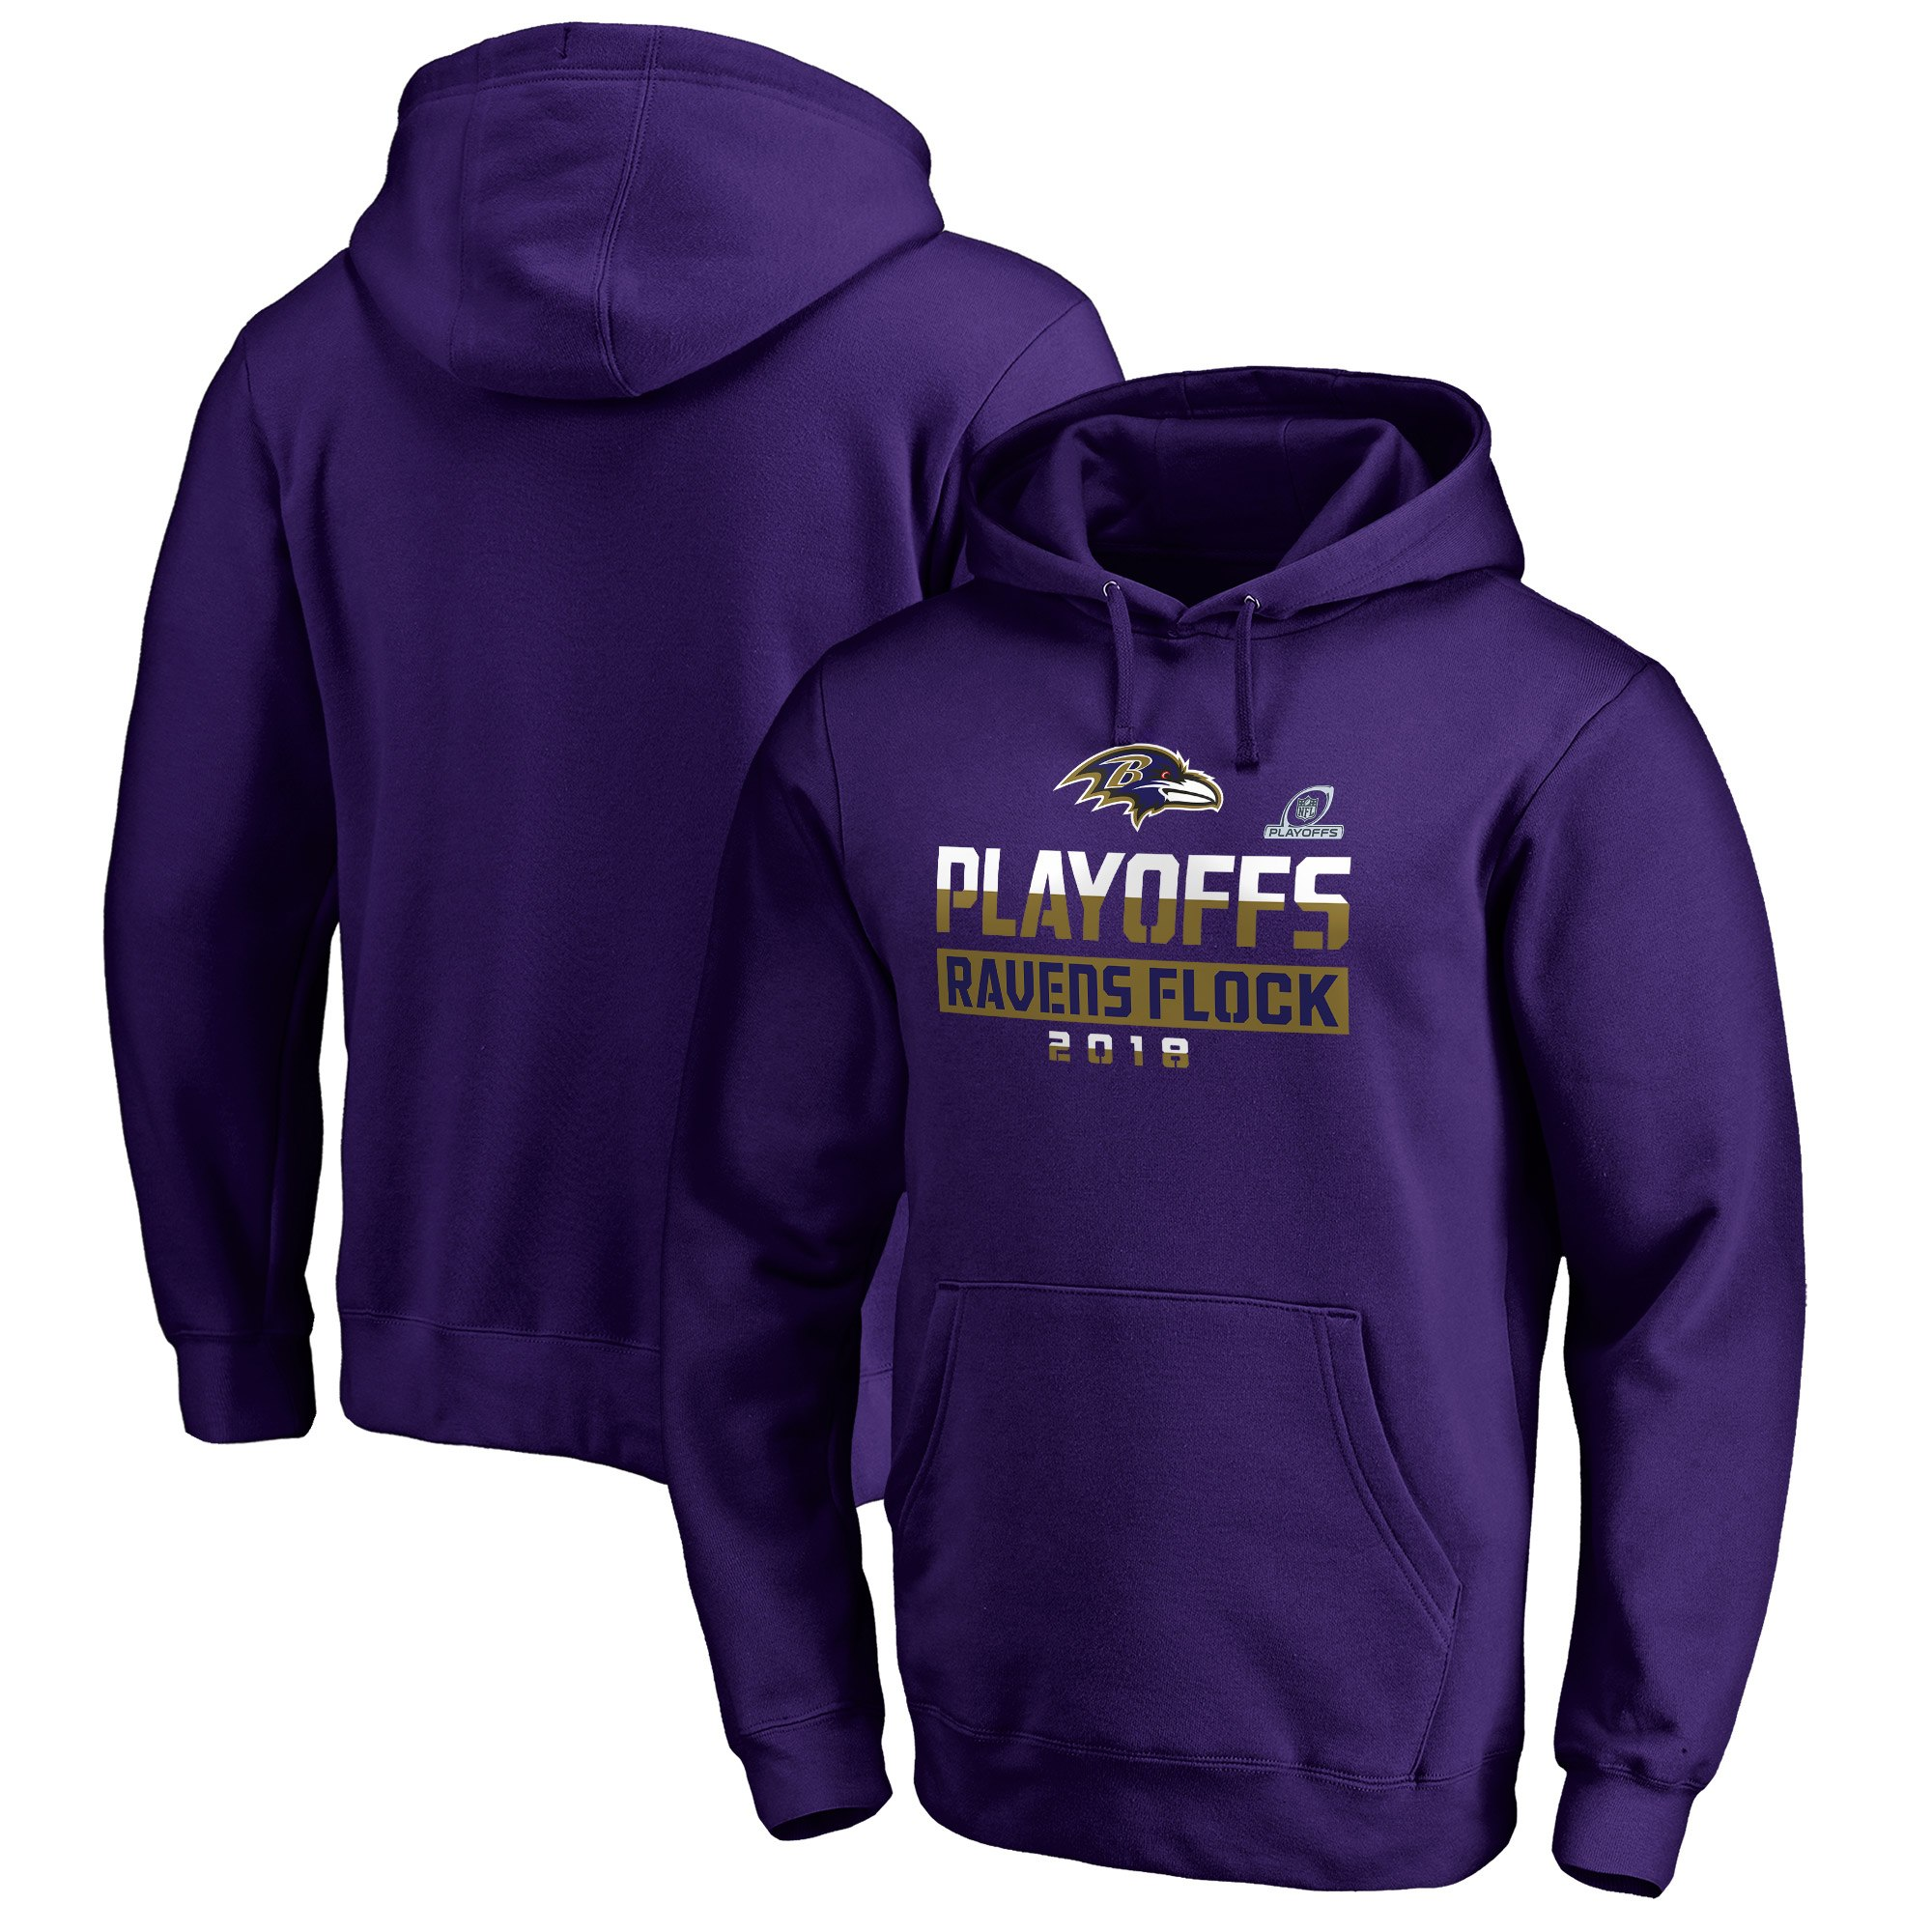 Ravens Purple 2018 NFL Playoffs Ravens Flock Men's Pullover Hoodie